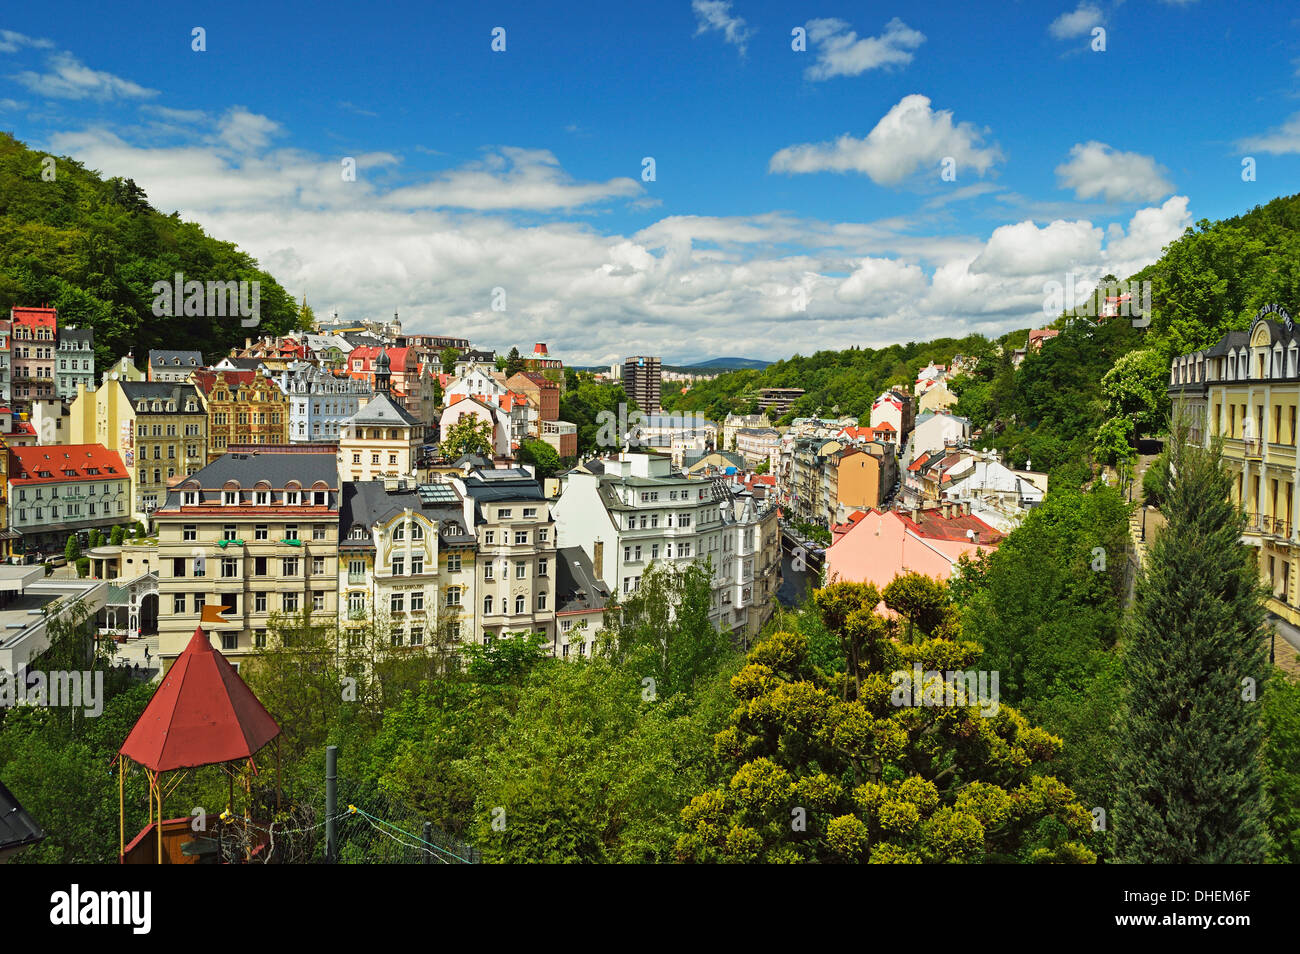 Historic spa section of Karlovy Vary, Bohemia, Czech Republic, Europe - Stock Image